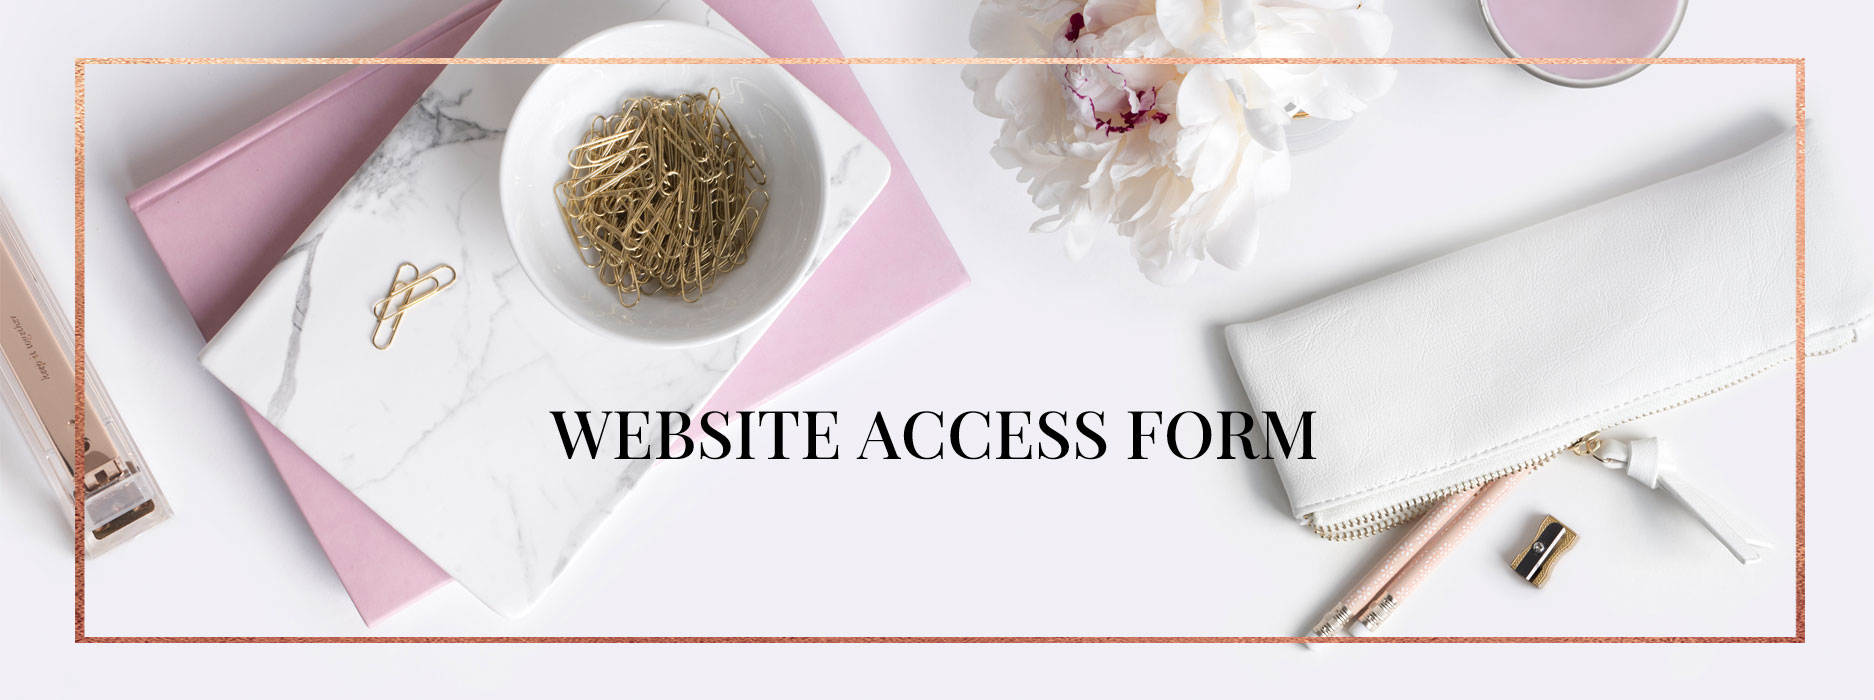 web access form hosting and domain registration